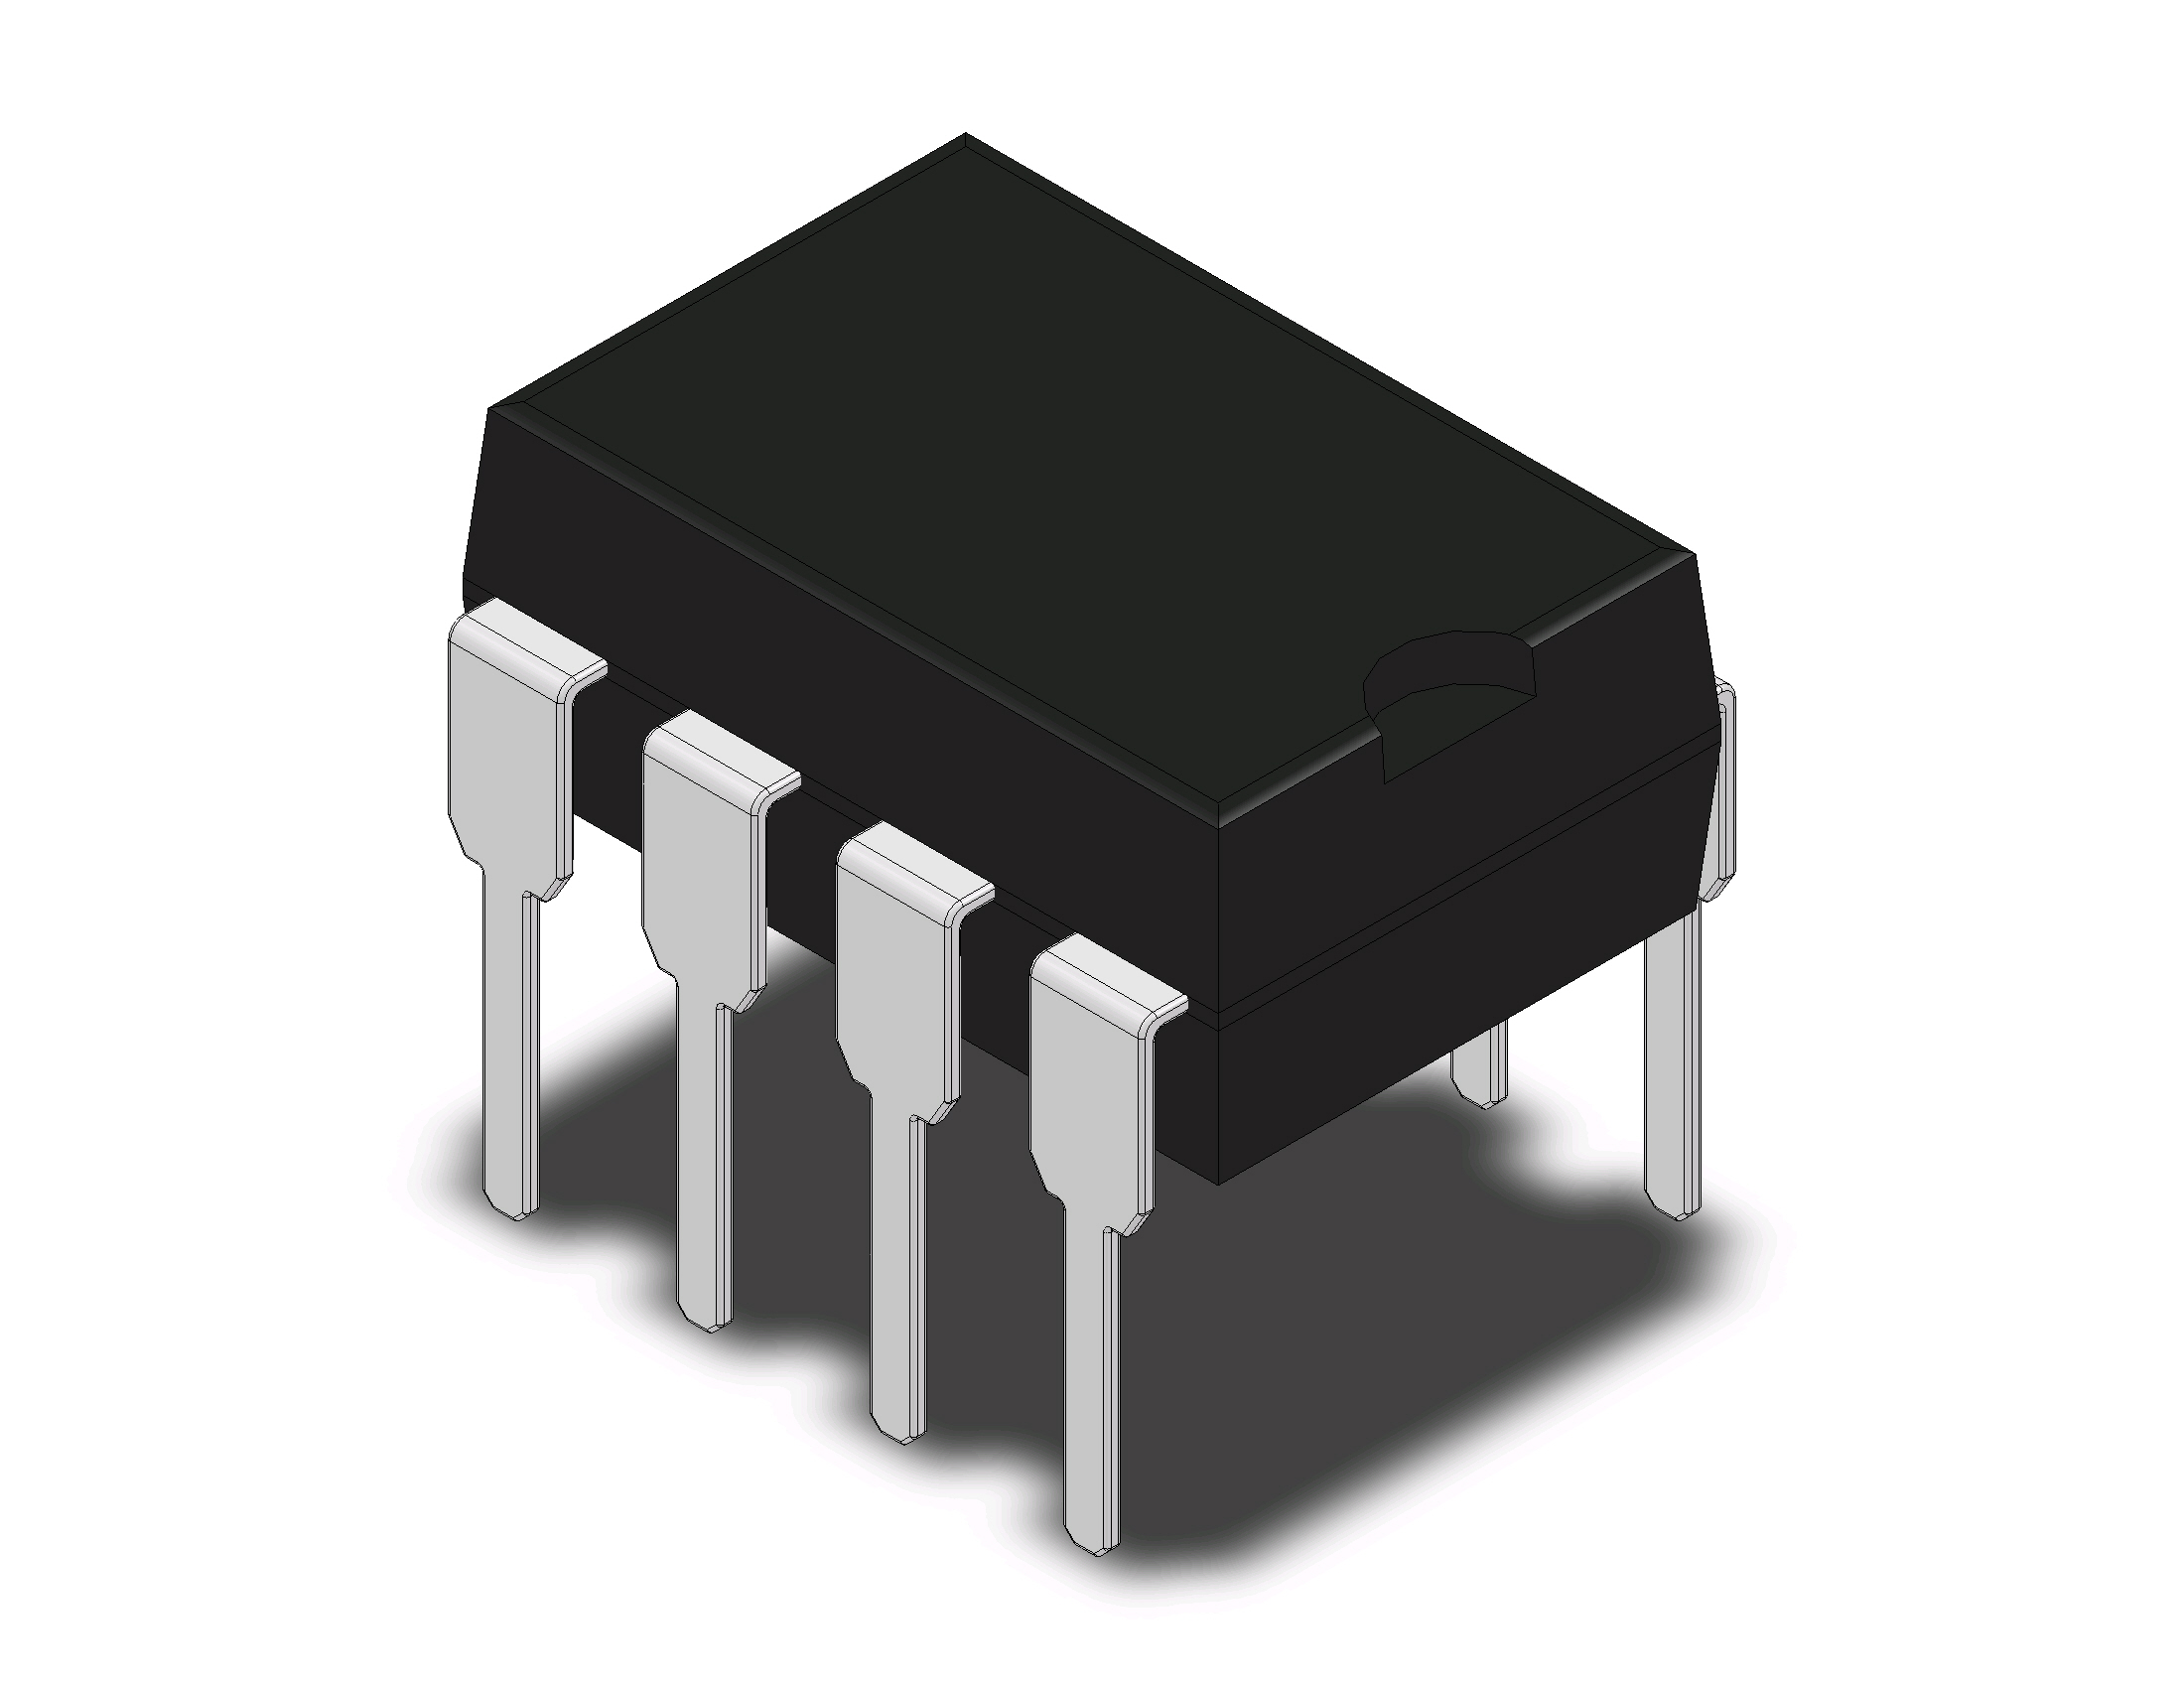 Buy Lm358p Dip 8 Dual Op Amp Low Power At The Right Price Electrokit Basic Circuits Circuit Home Integrated Amplifiers